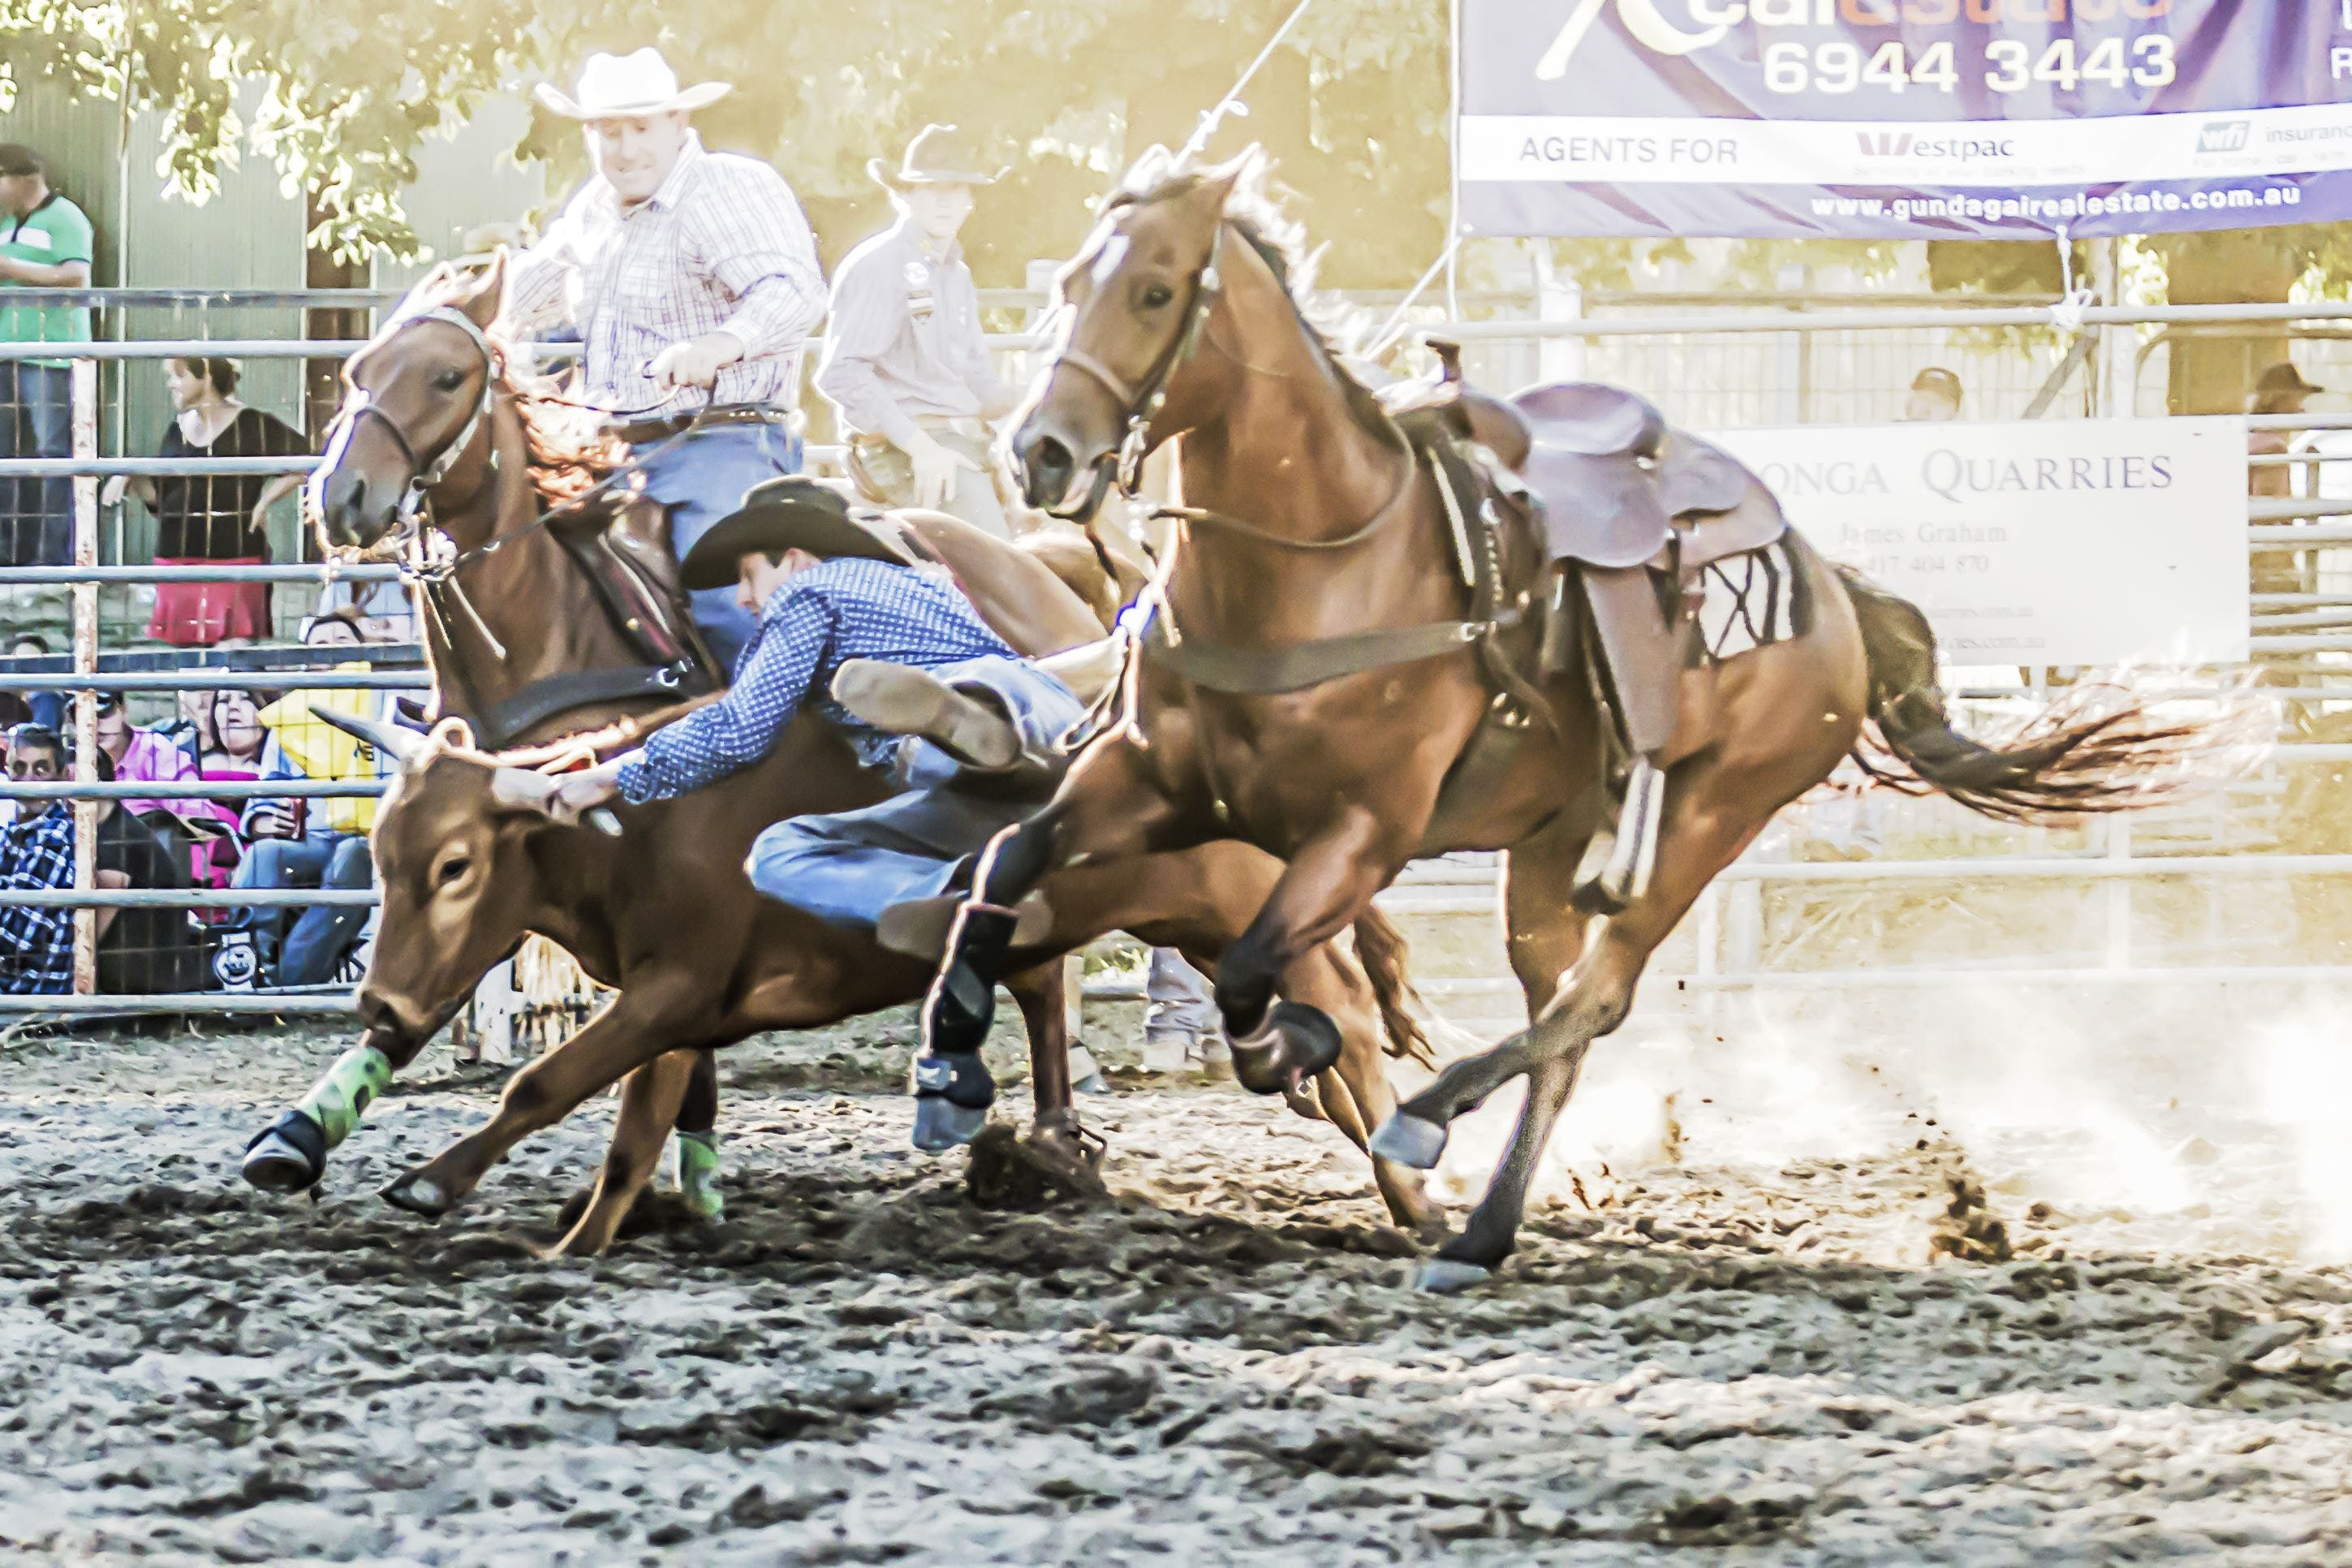 Gundagai Rodeo - Lightning Ridge Tourism